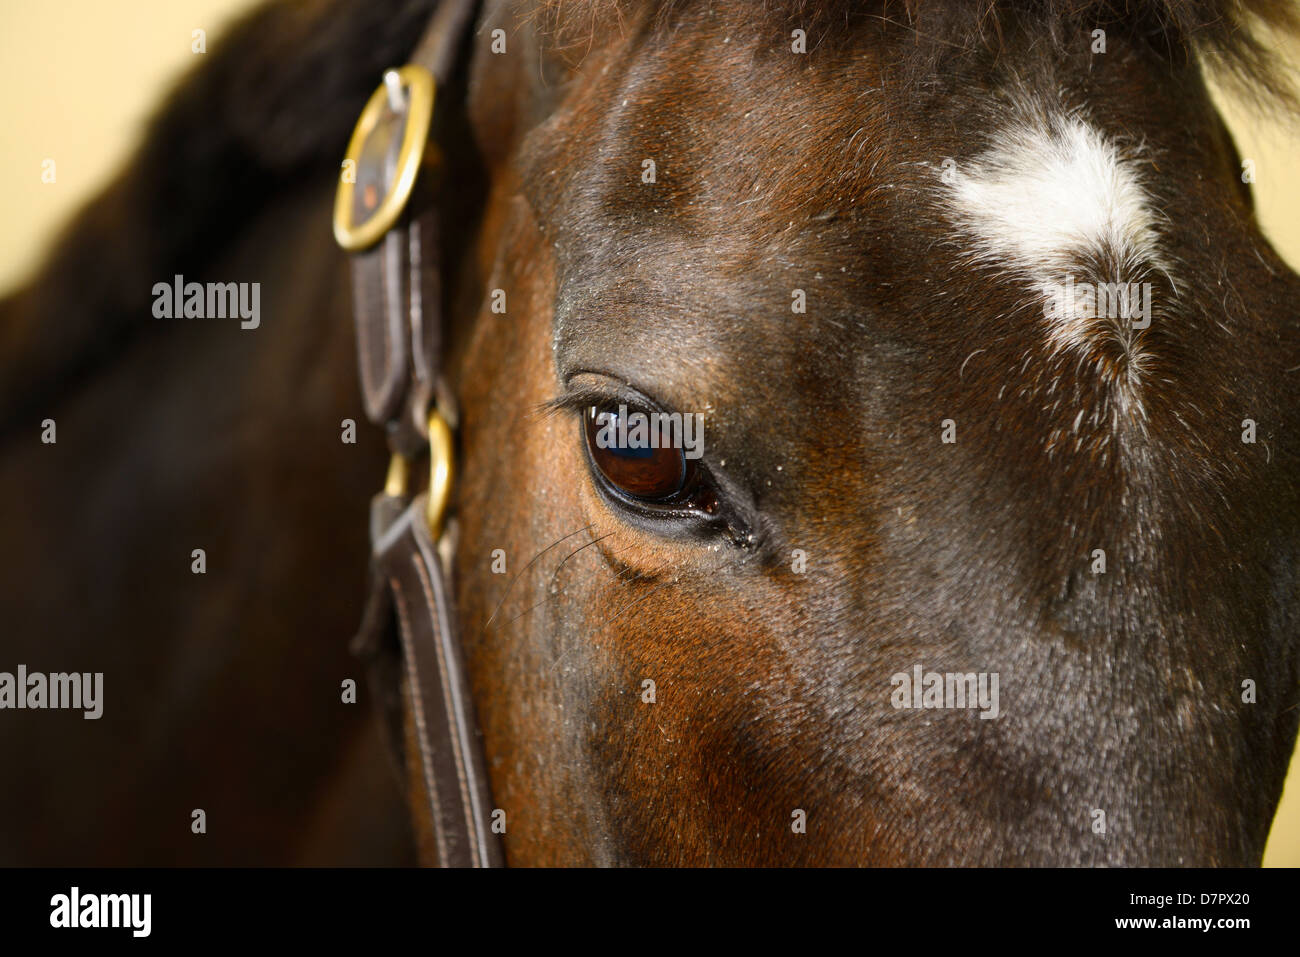 Eye of bay gelding thoroughbred horse sedated for treatment of wound with Derazil - Stock Image